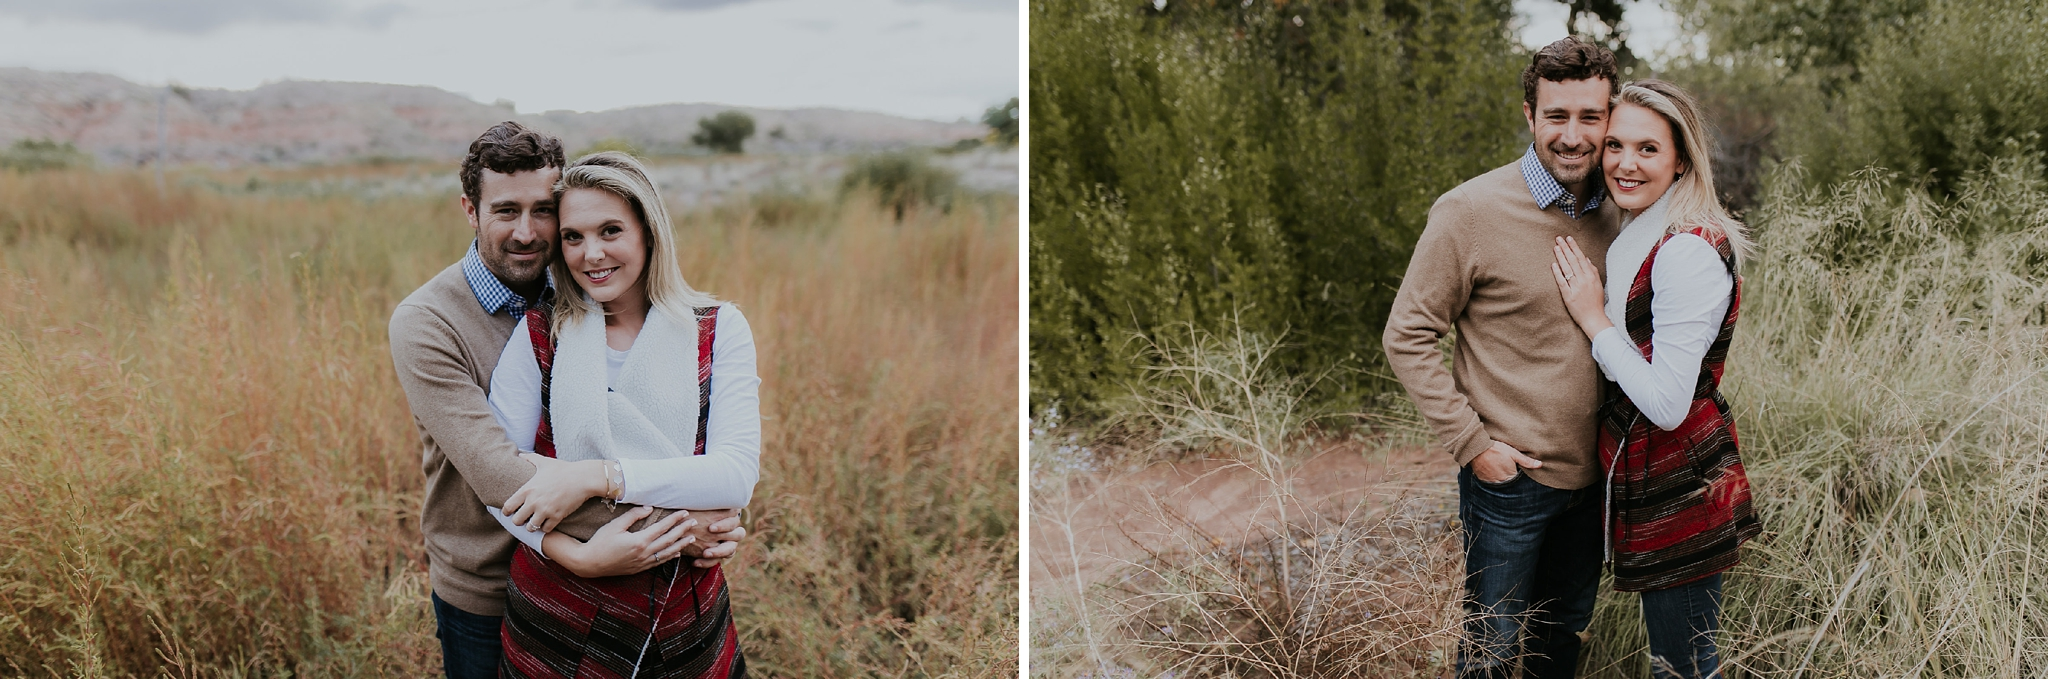 Alicia+lucia+photography+-+albuquerque+wedding+photographer+-+santa+fe+wedding+photography+-+new+mexico+wedding+photographer+-+new+mexico+wedding+-+new+mexico+engagement+-+engagement+style+-+style+lookbook_0116.jpg